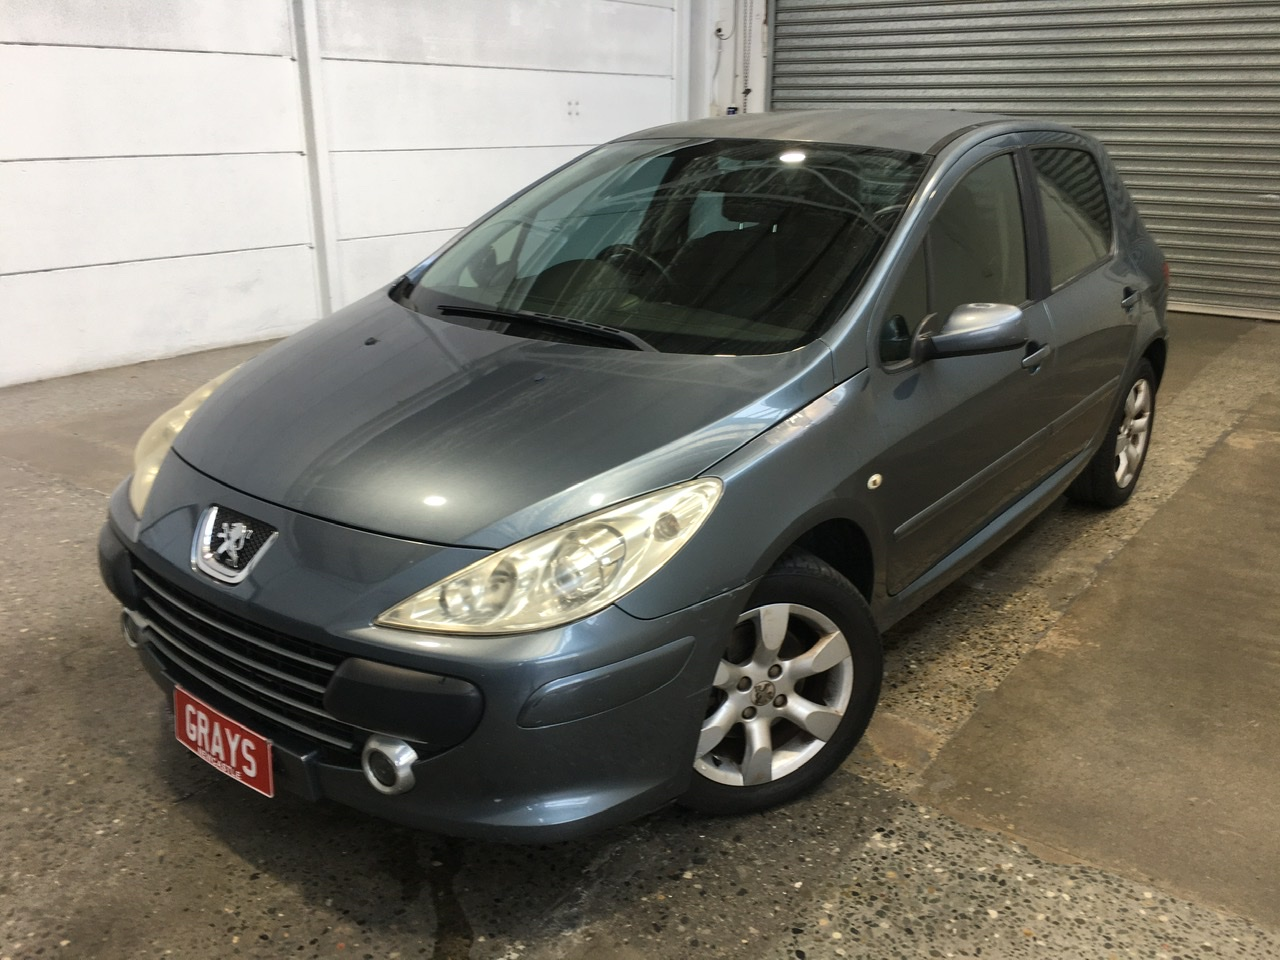 Peugeot 307 XS HDI 1.6 Turbo Diesel Manual Hatchback